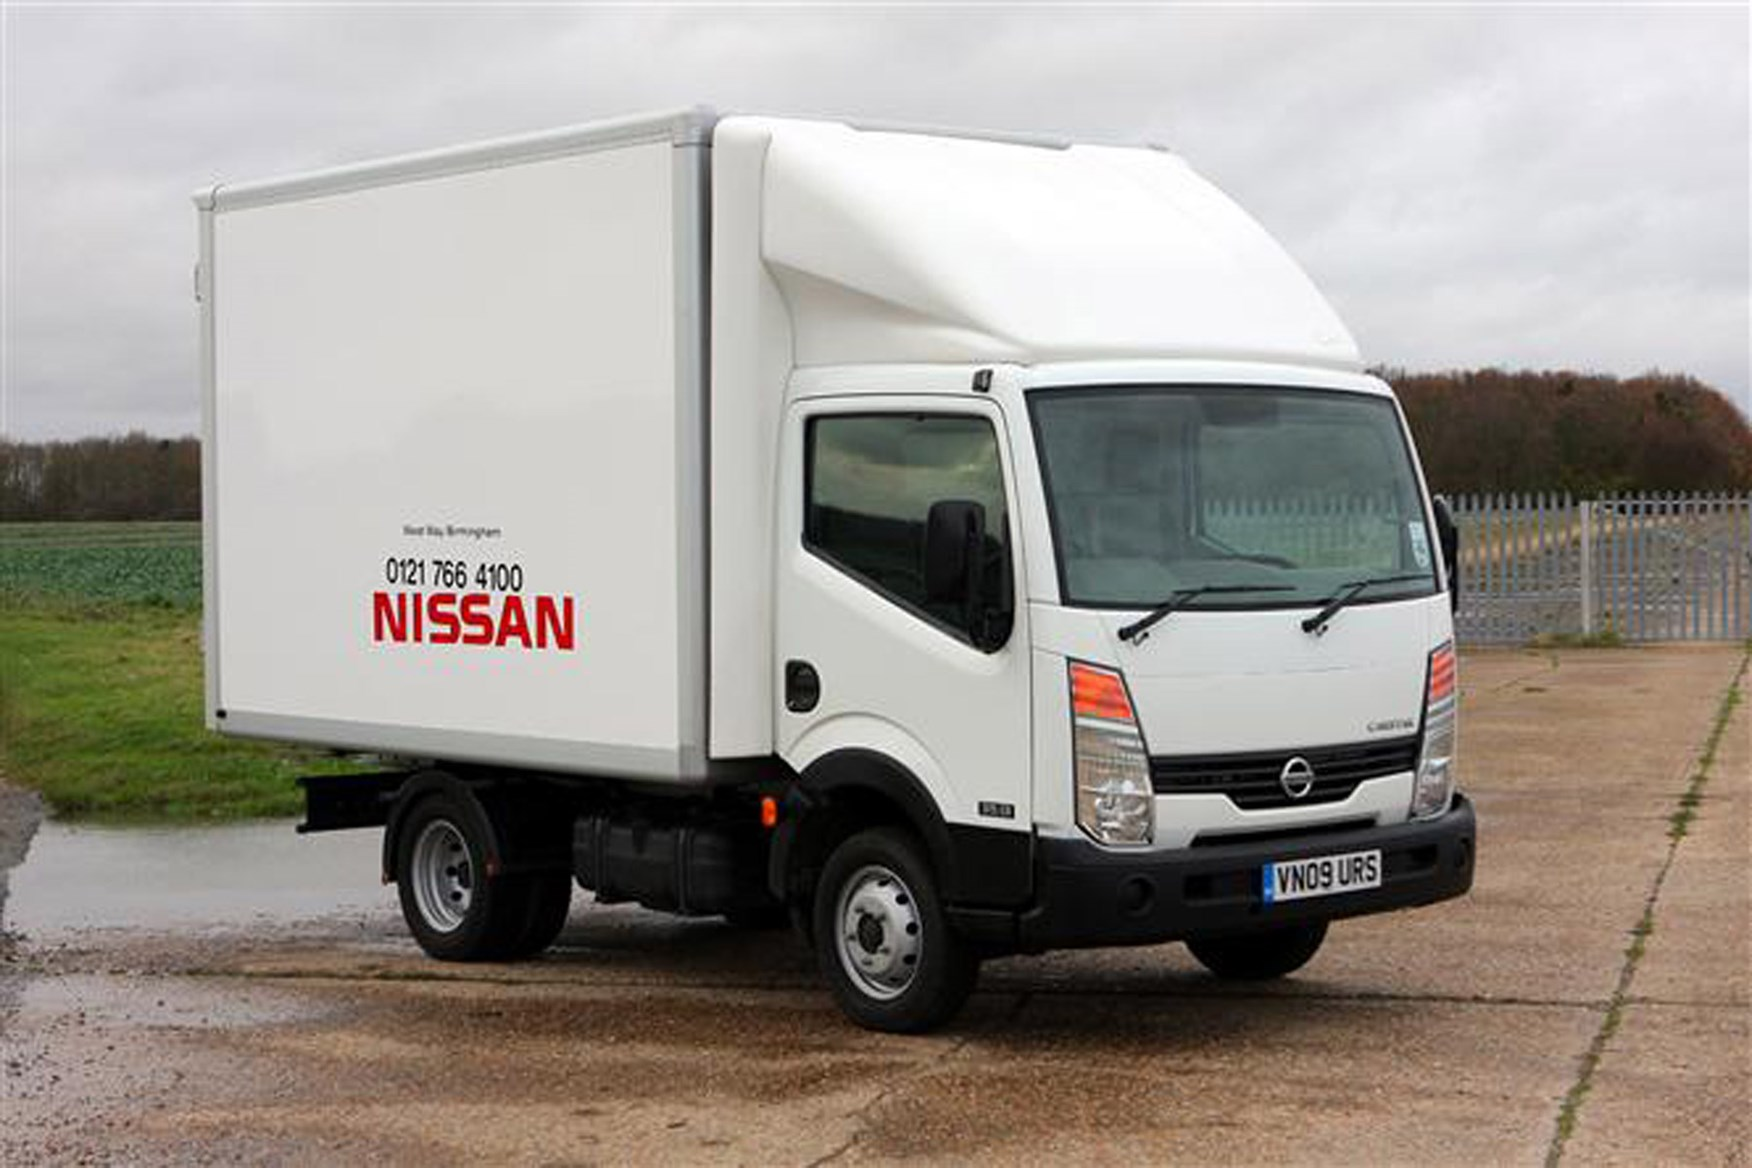 Nissan Cabstar review on Parkers Vans - exterior